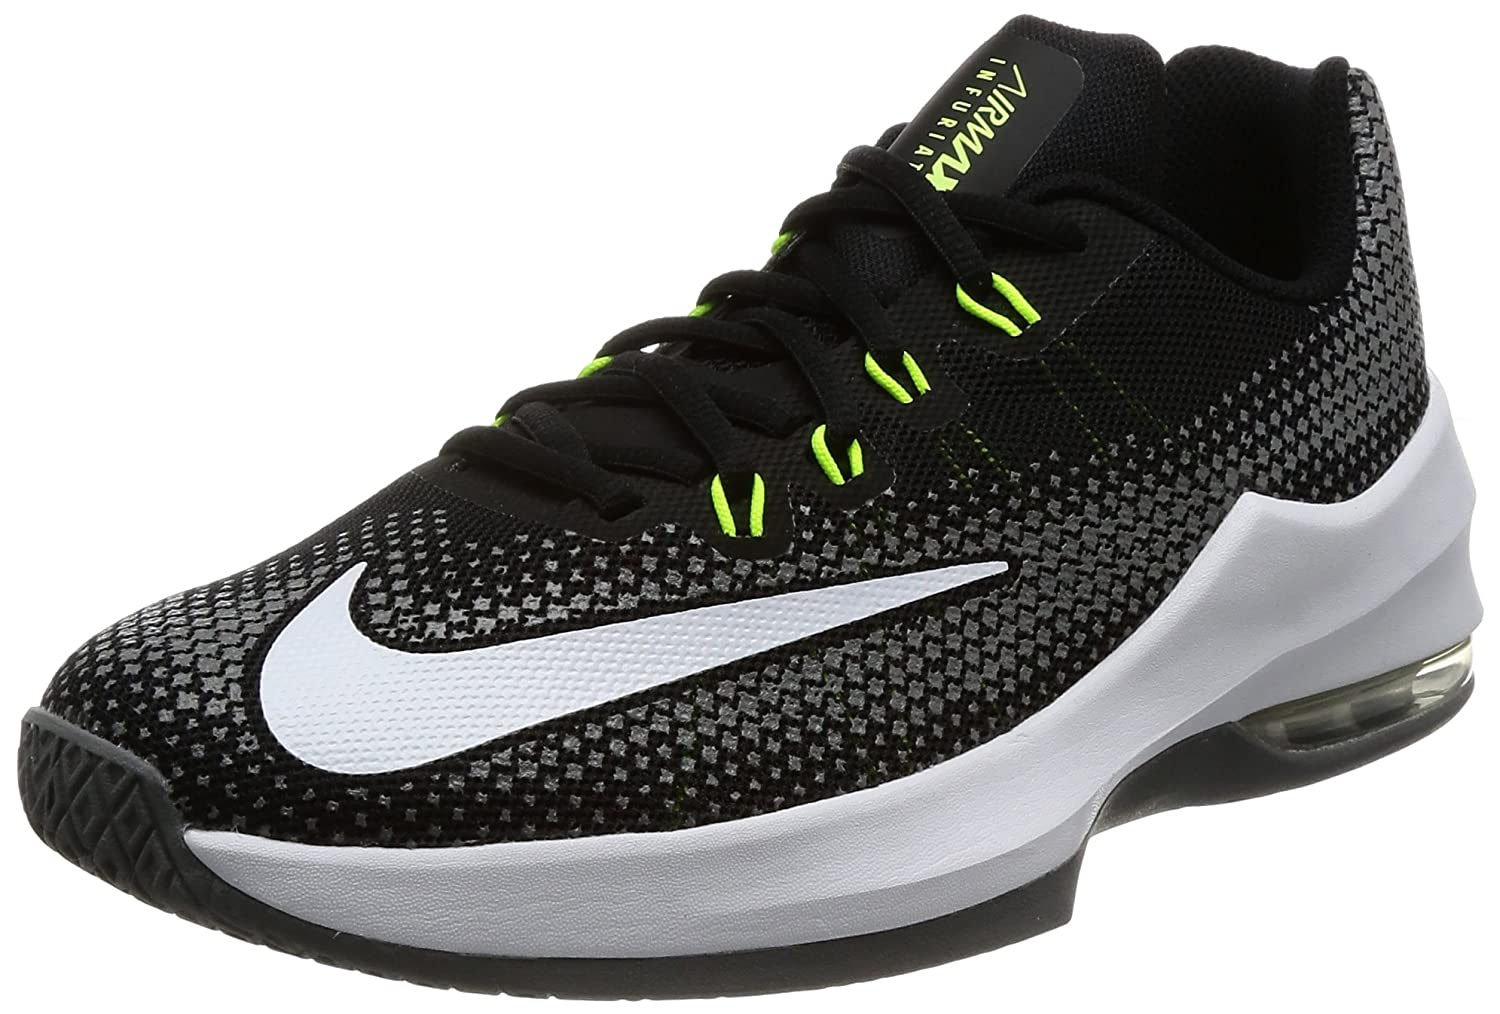 new styles 1a811 70dcf Amazon.com   Nike Boy s Air Max Infuriate (GS) Basketball Shoe  Black White Volt Cool Grey Size 6 M US   Athletic